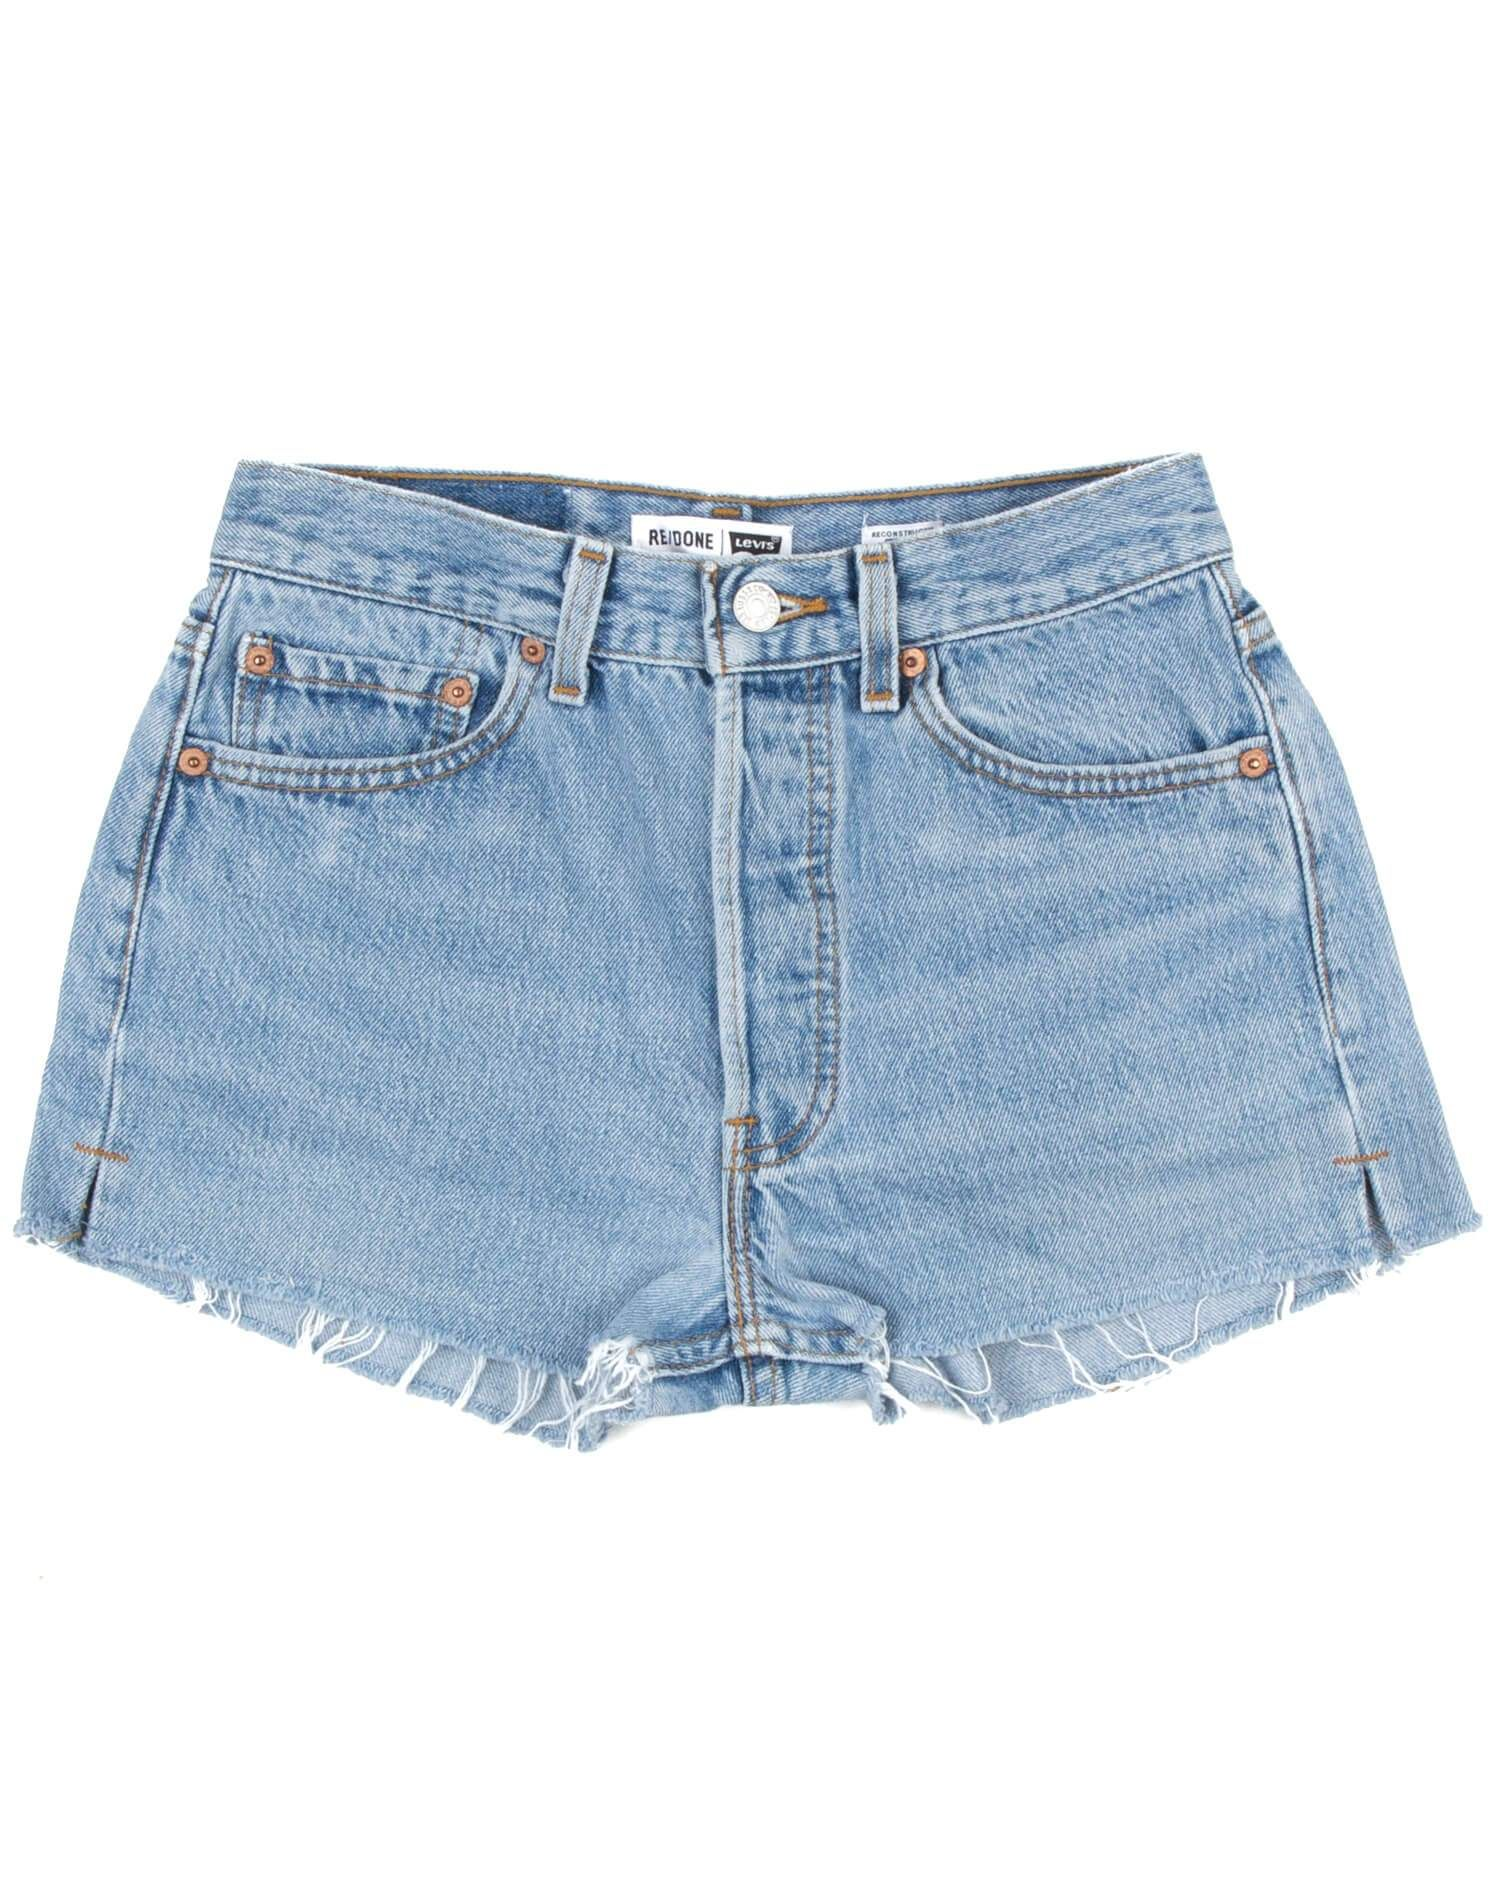 Vintage Levi's | The Shorts | Light Blue | Size 23 | No. 23TS1164312 | Denim #lightblueshorts